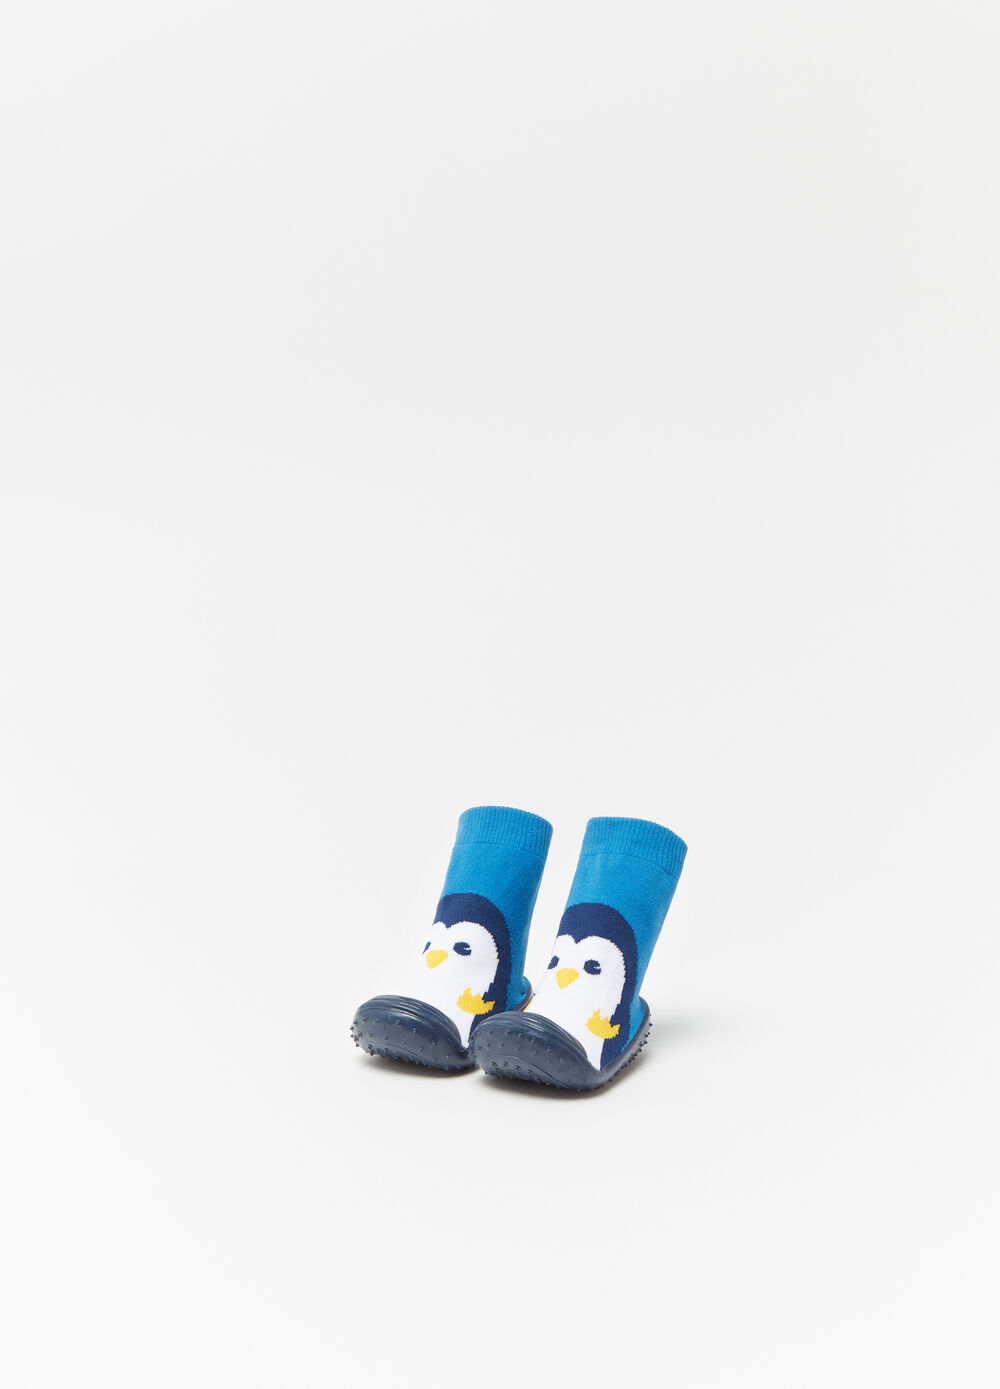 Baby shoes with high ankles and penguin